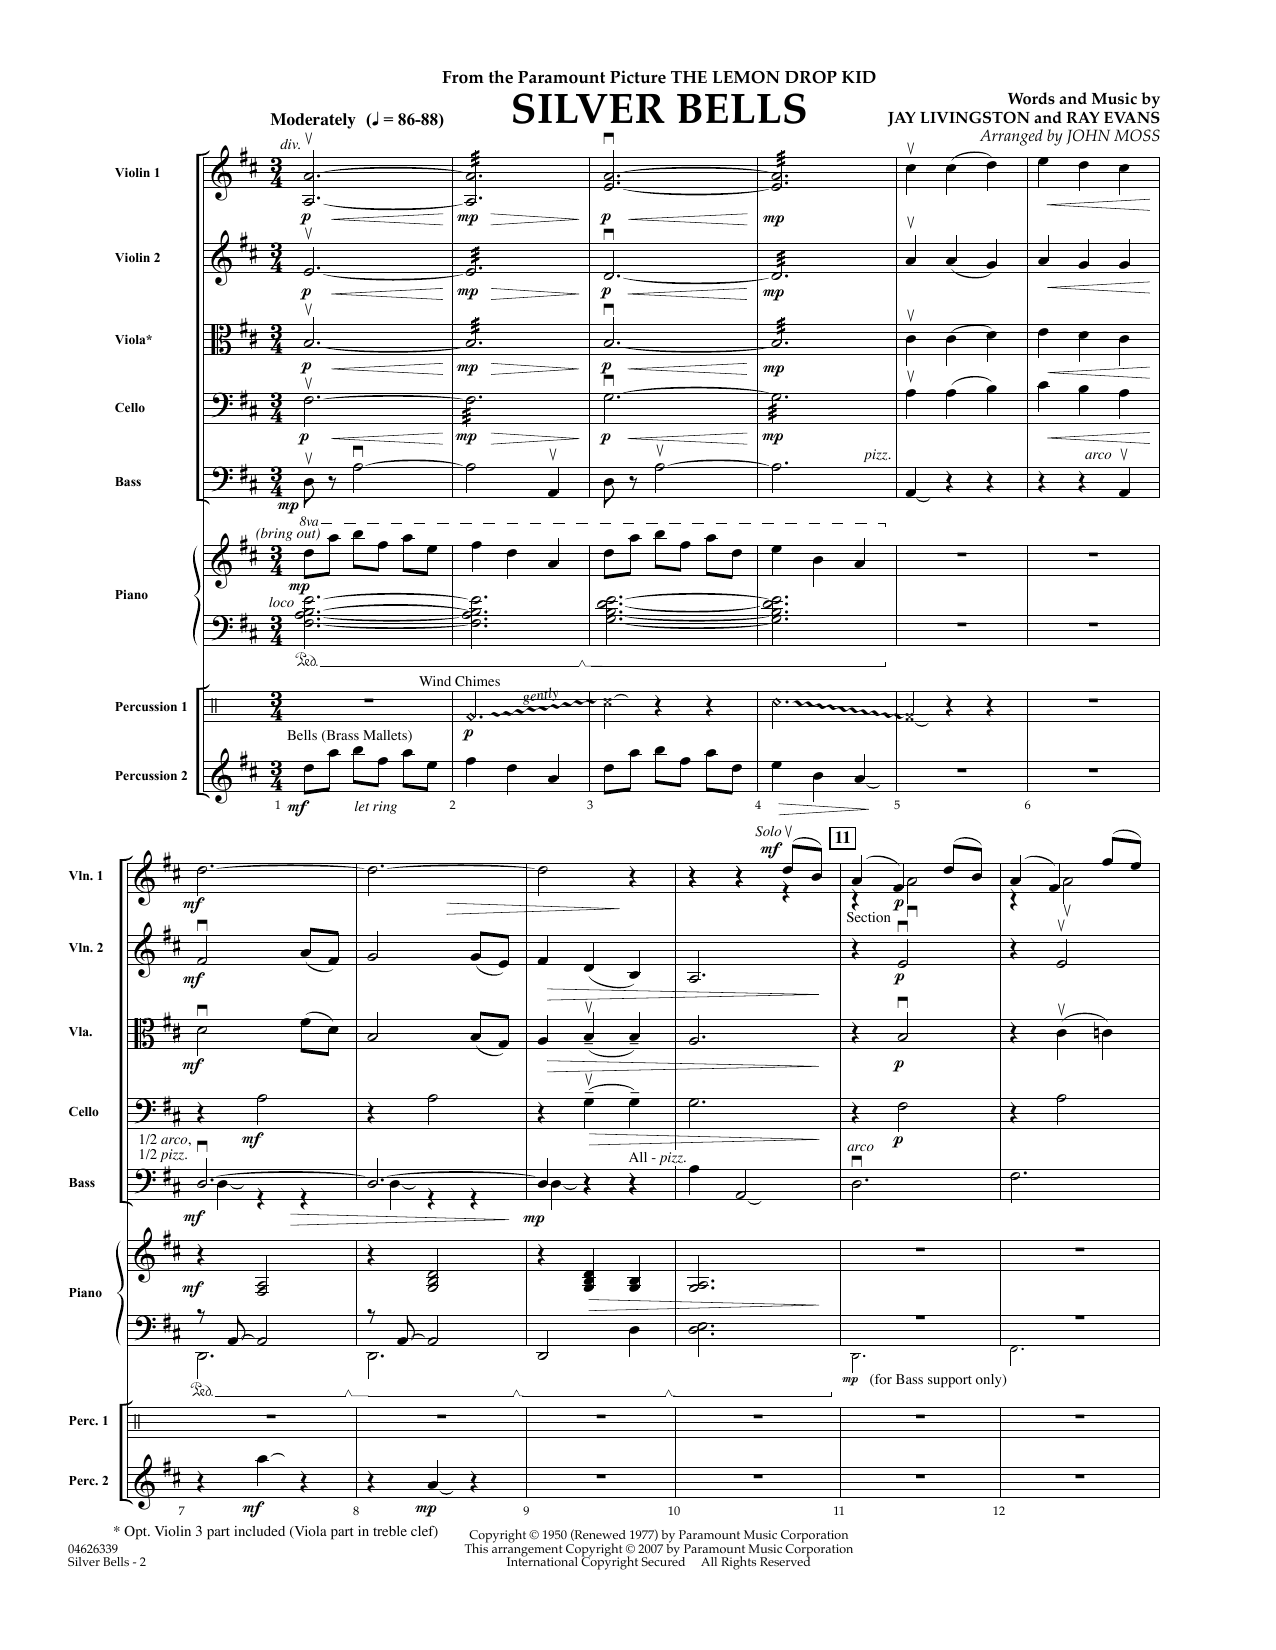 Silver Bells (COMPLETE) sheet music for orchestra by John Moss, Jay Livingston, John Denver, Kenny Chesney, Lady Antebellum and Ray Evans. Score Image Preview.